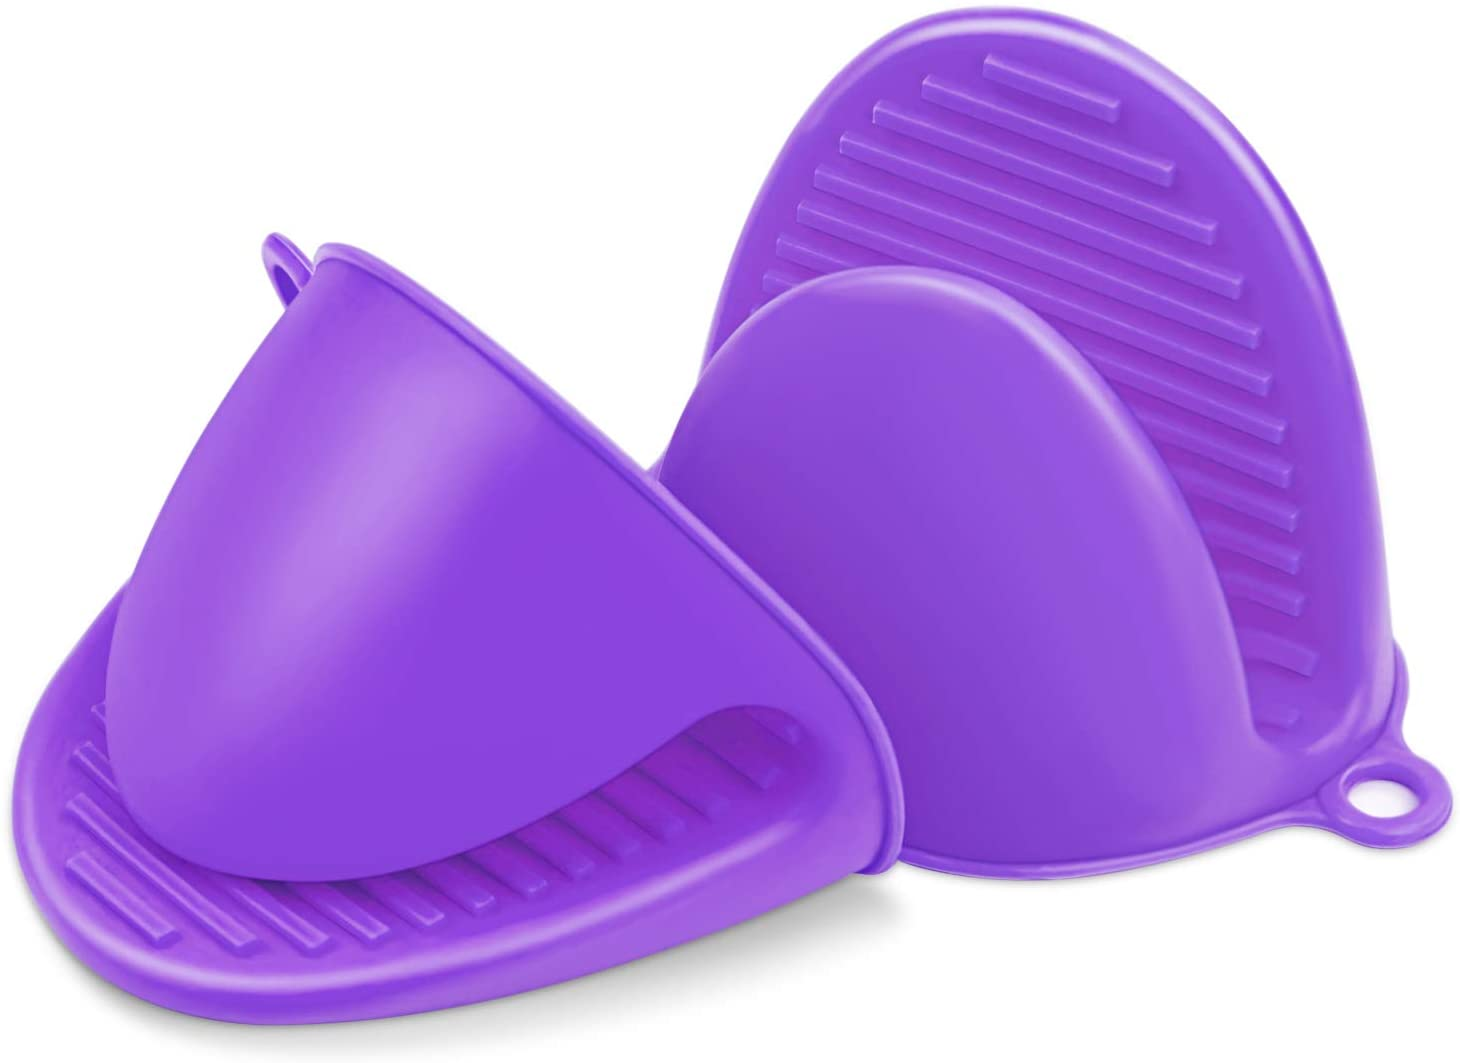 ZXFYE Silicone Cooking Gloves Silicone Pot Holder Mitts Heat Insulation Finger Protector Pinch Grips Kitchen Heat Resistant Gloves (1 Pair) (Purple)